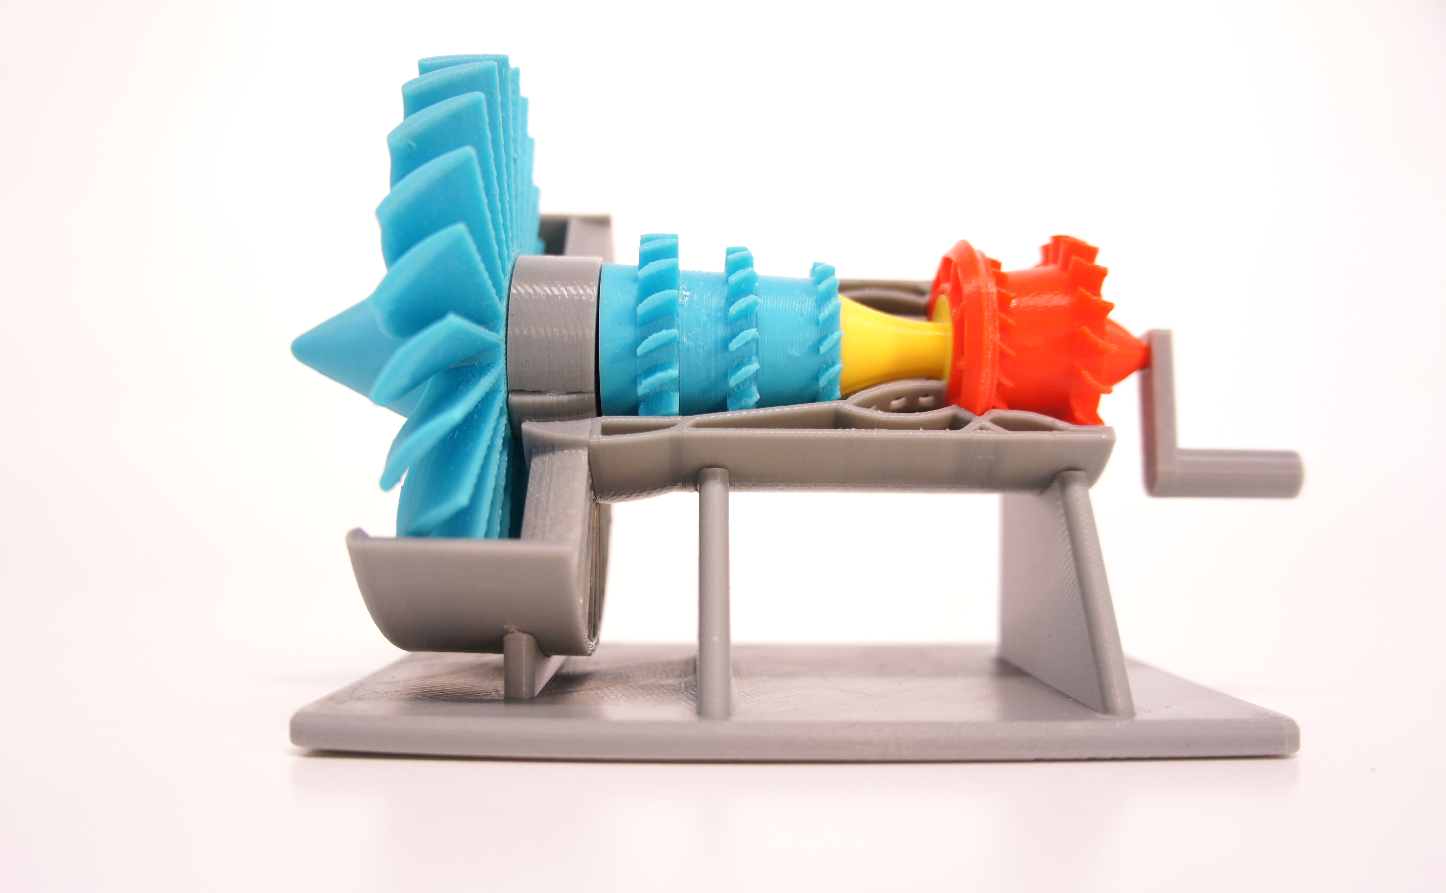 3d printed turbine engine model